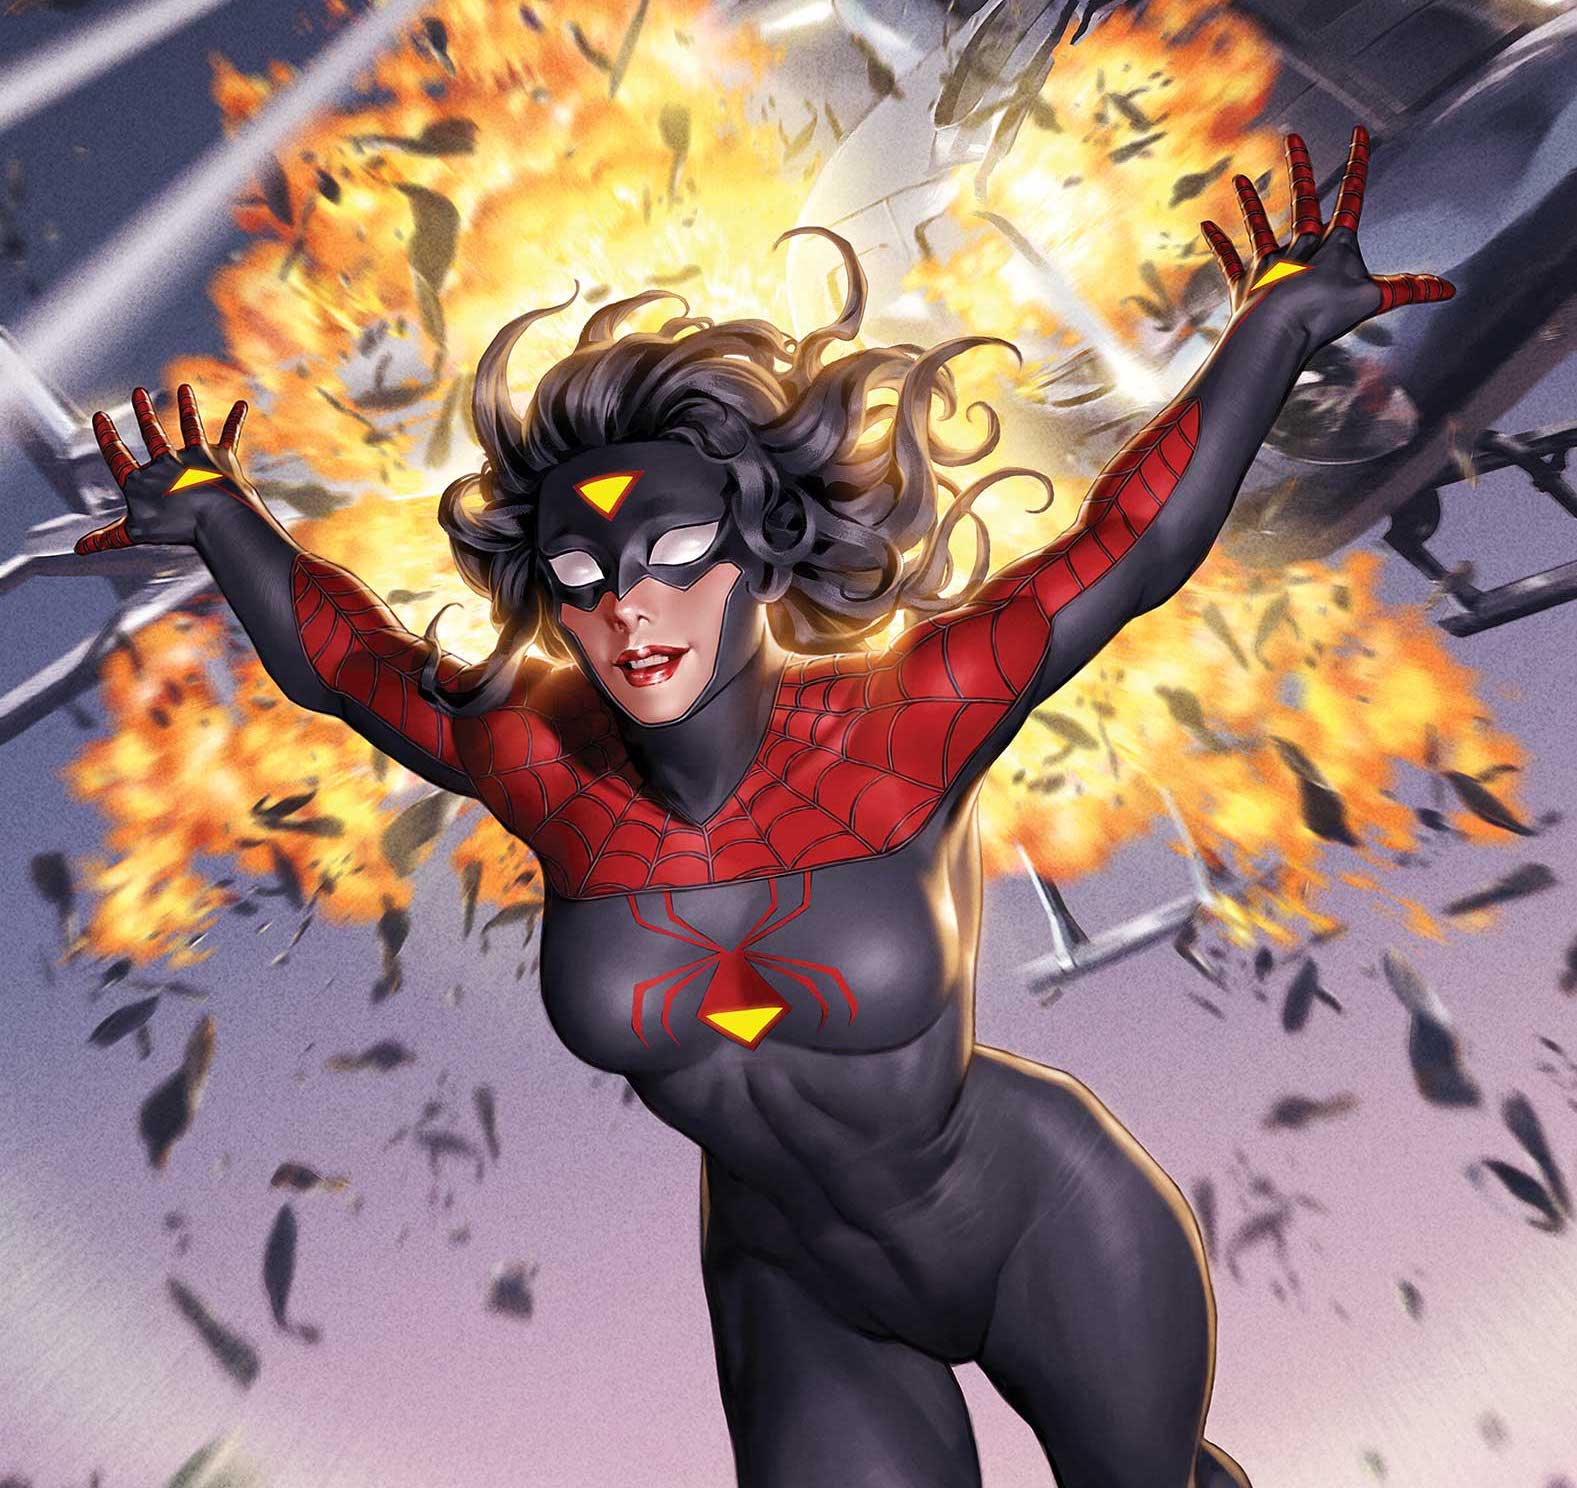 Marvel Comics First Look: Spider-Woman suits up in new costume this March